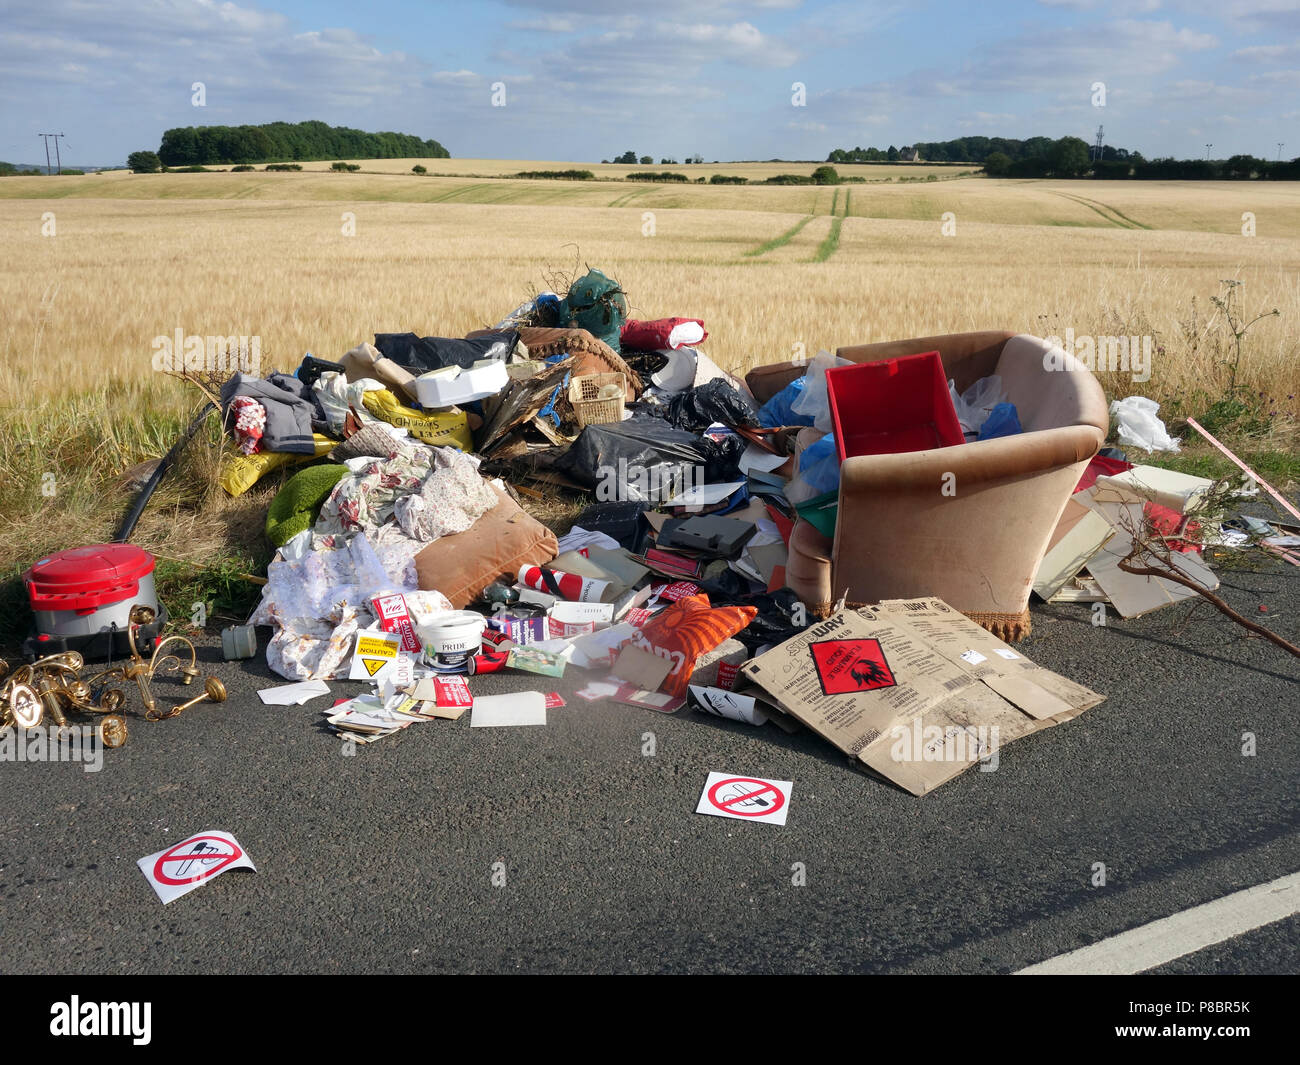 Lorry tipped rubbish all over the road by back off loading household rubbish into a lane in this picturesque part Dinnington, South Yorkshire - Stock Image